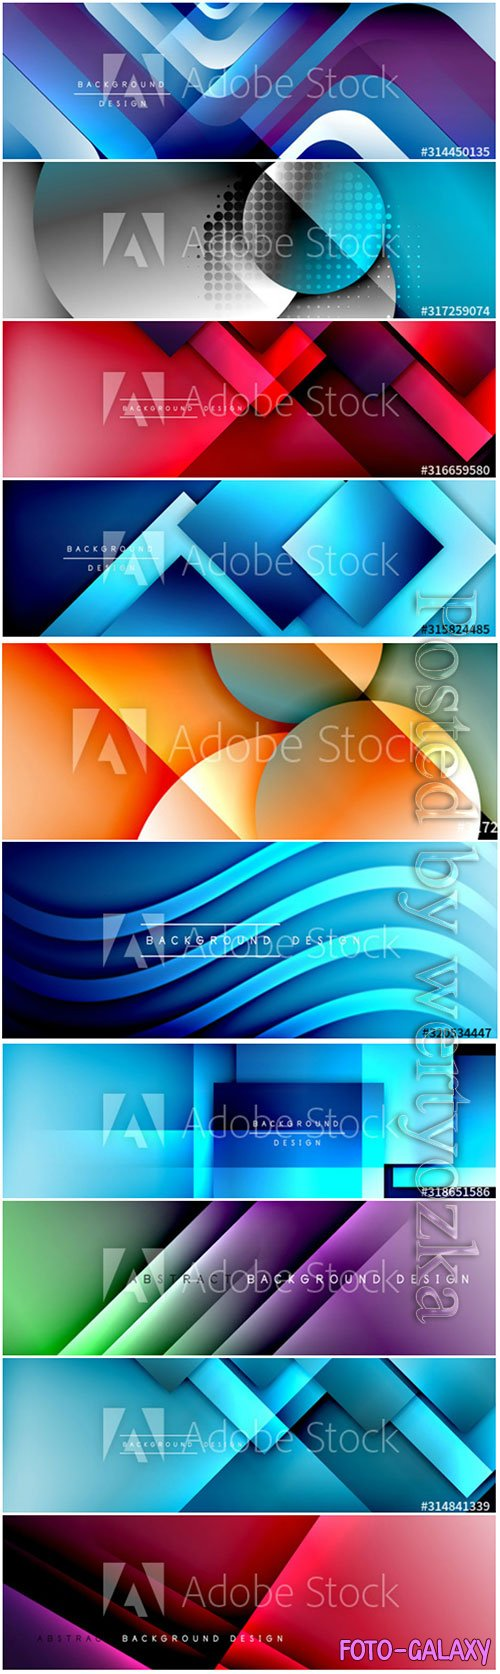 Geometric abstract background 3D effects vector illustrations